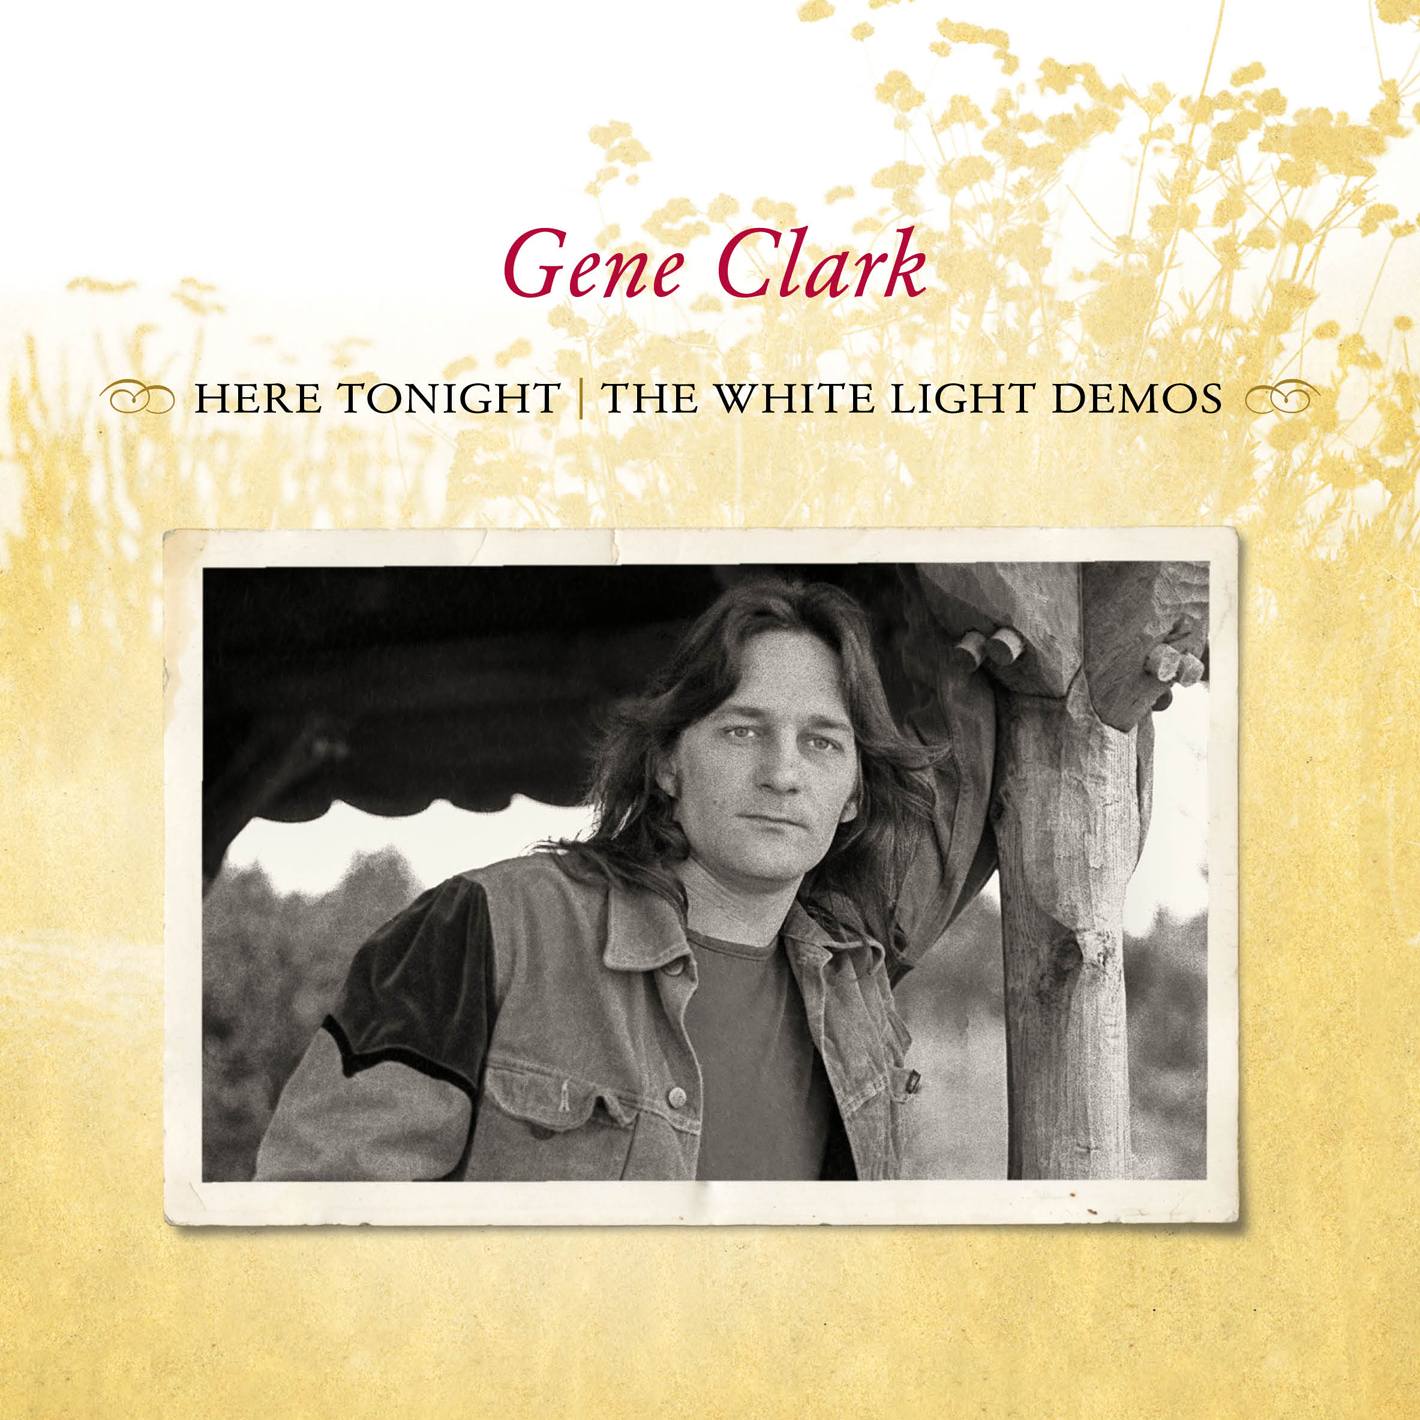 Gene clark here tonight the white light demos 2013